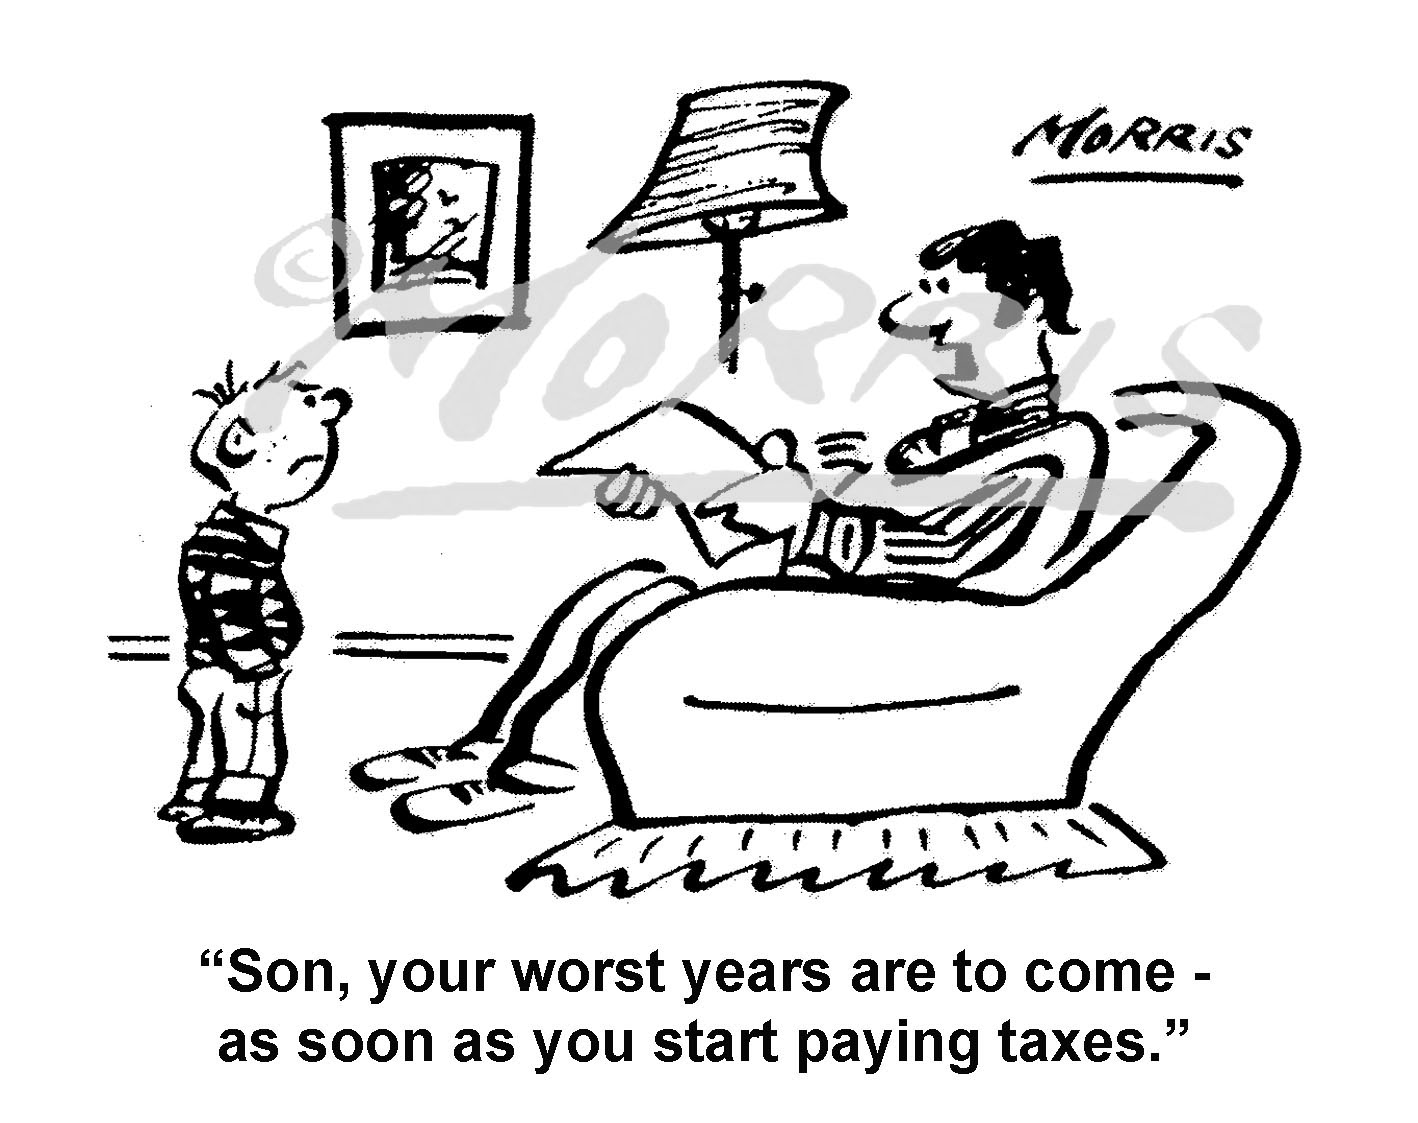 Personal finance tax cartoon – Ref: 7492bw